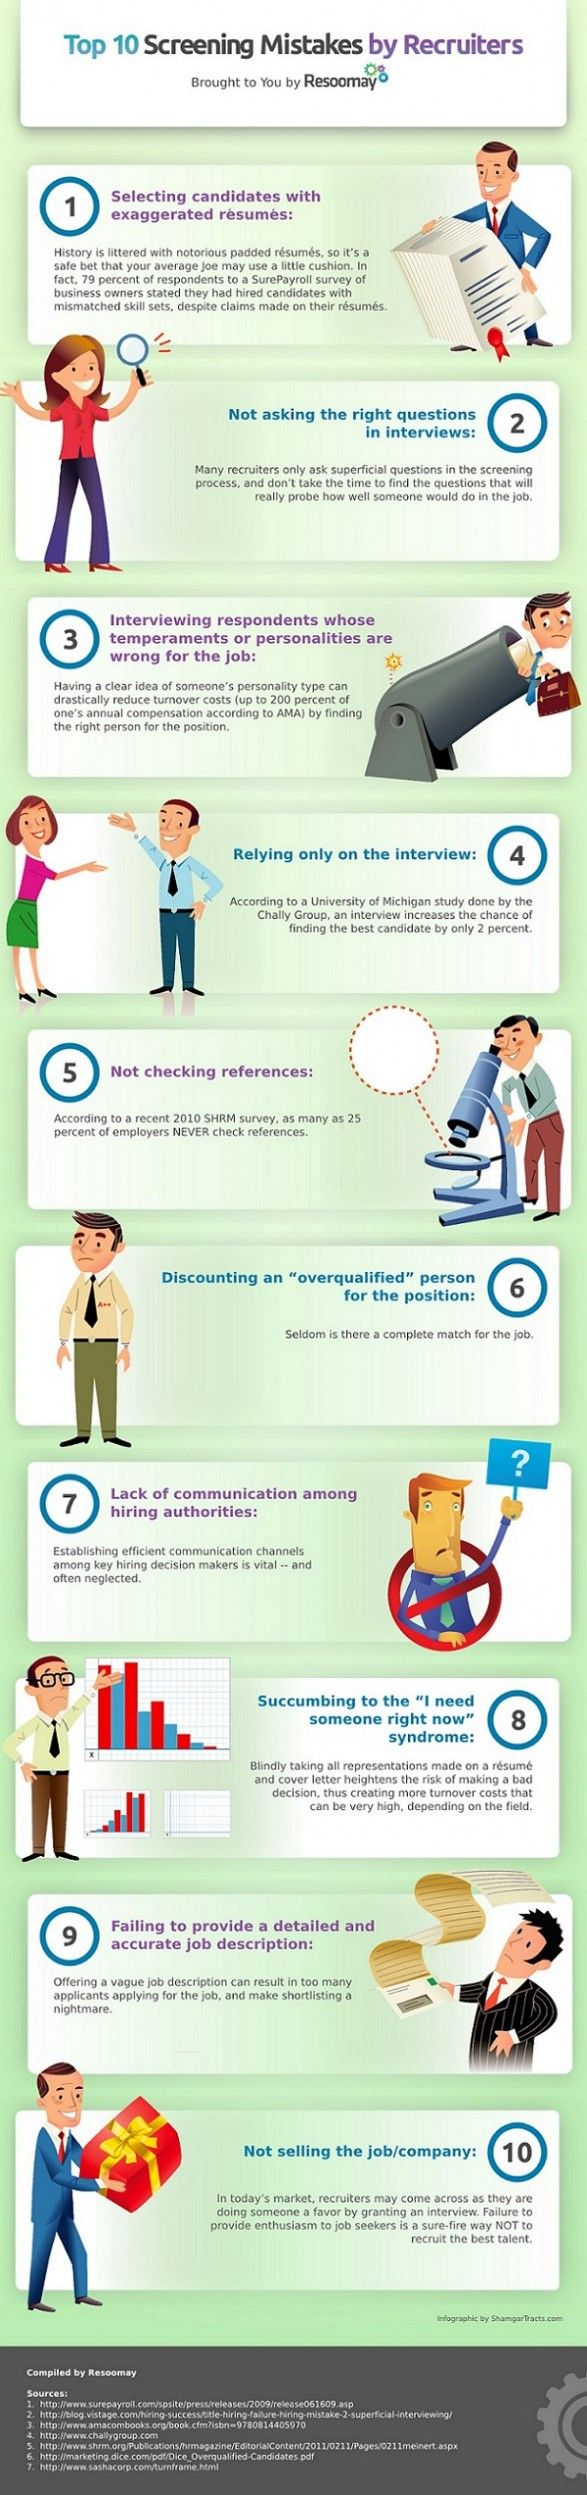 best images about recruiters job interviews infographics on the top ten screening mistakes by recruiters iexcli love you infographic